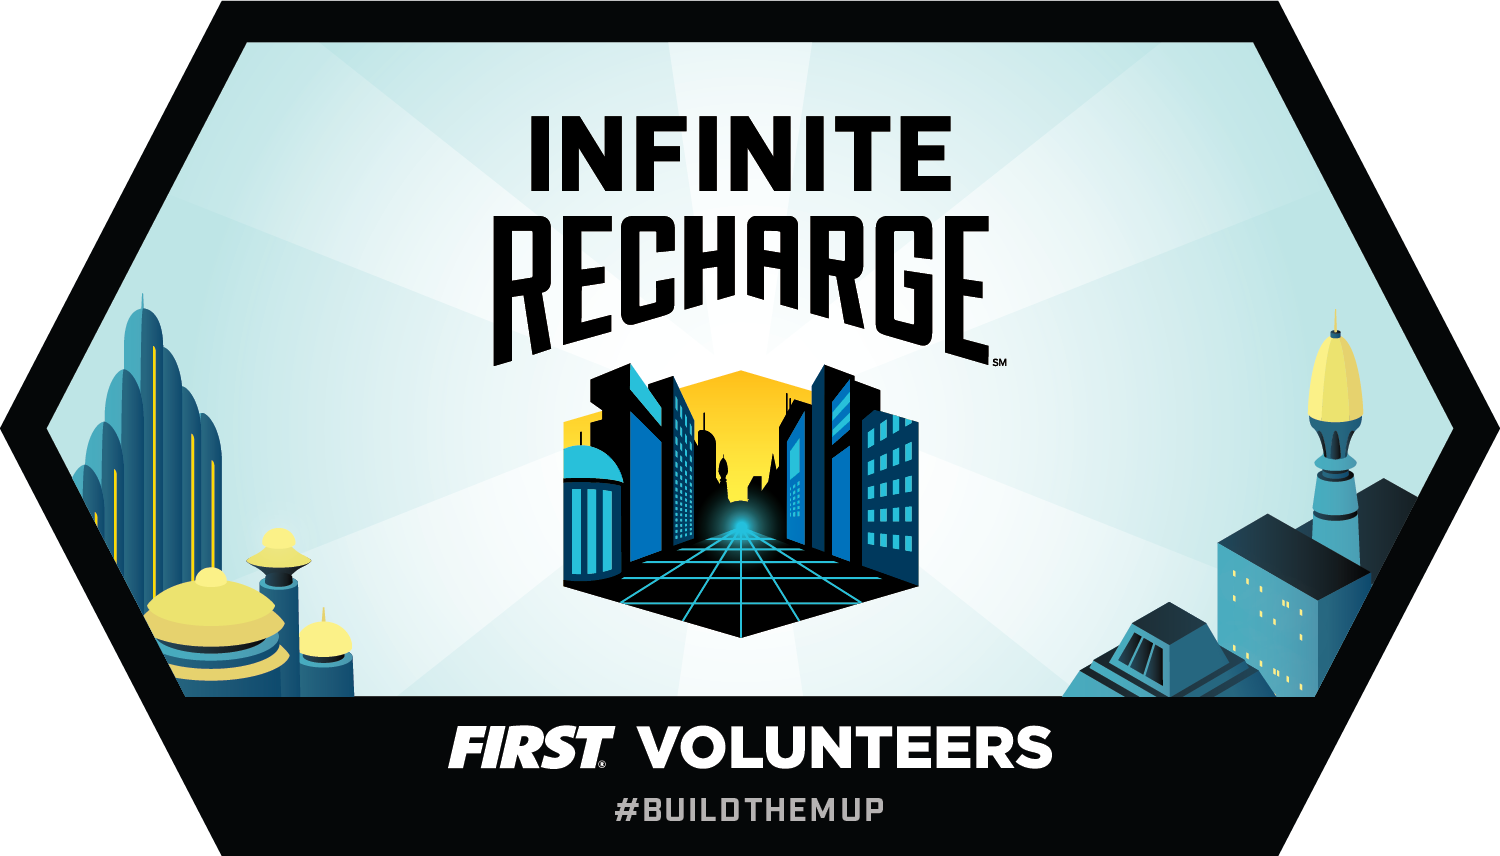 Build Tomorrow badge - INFINITE RECHARGE